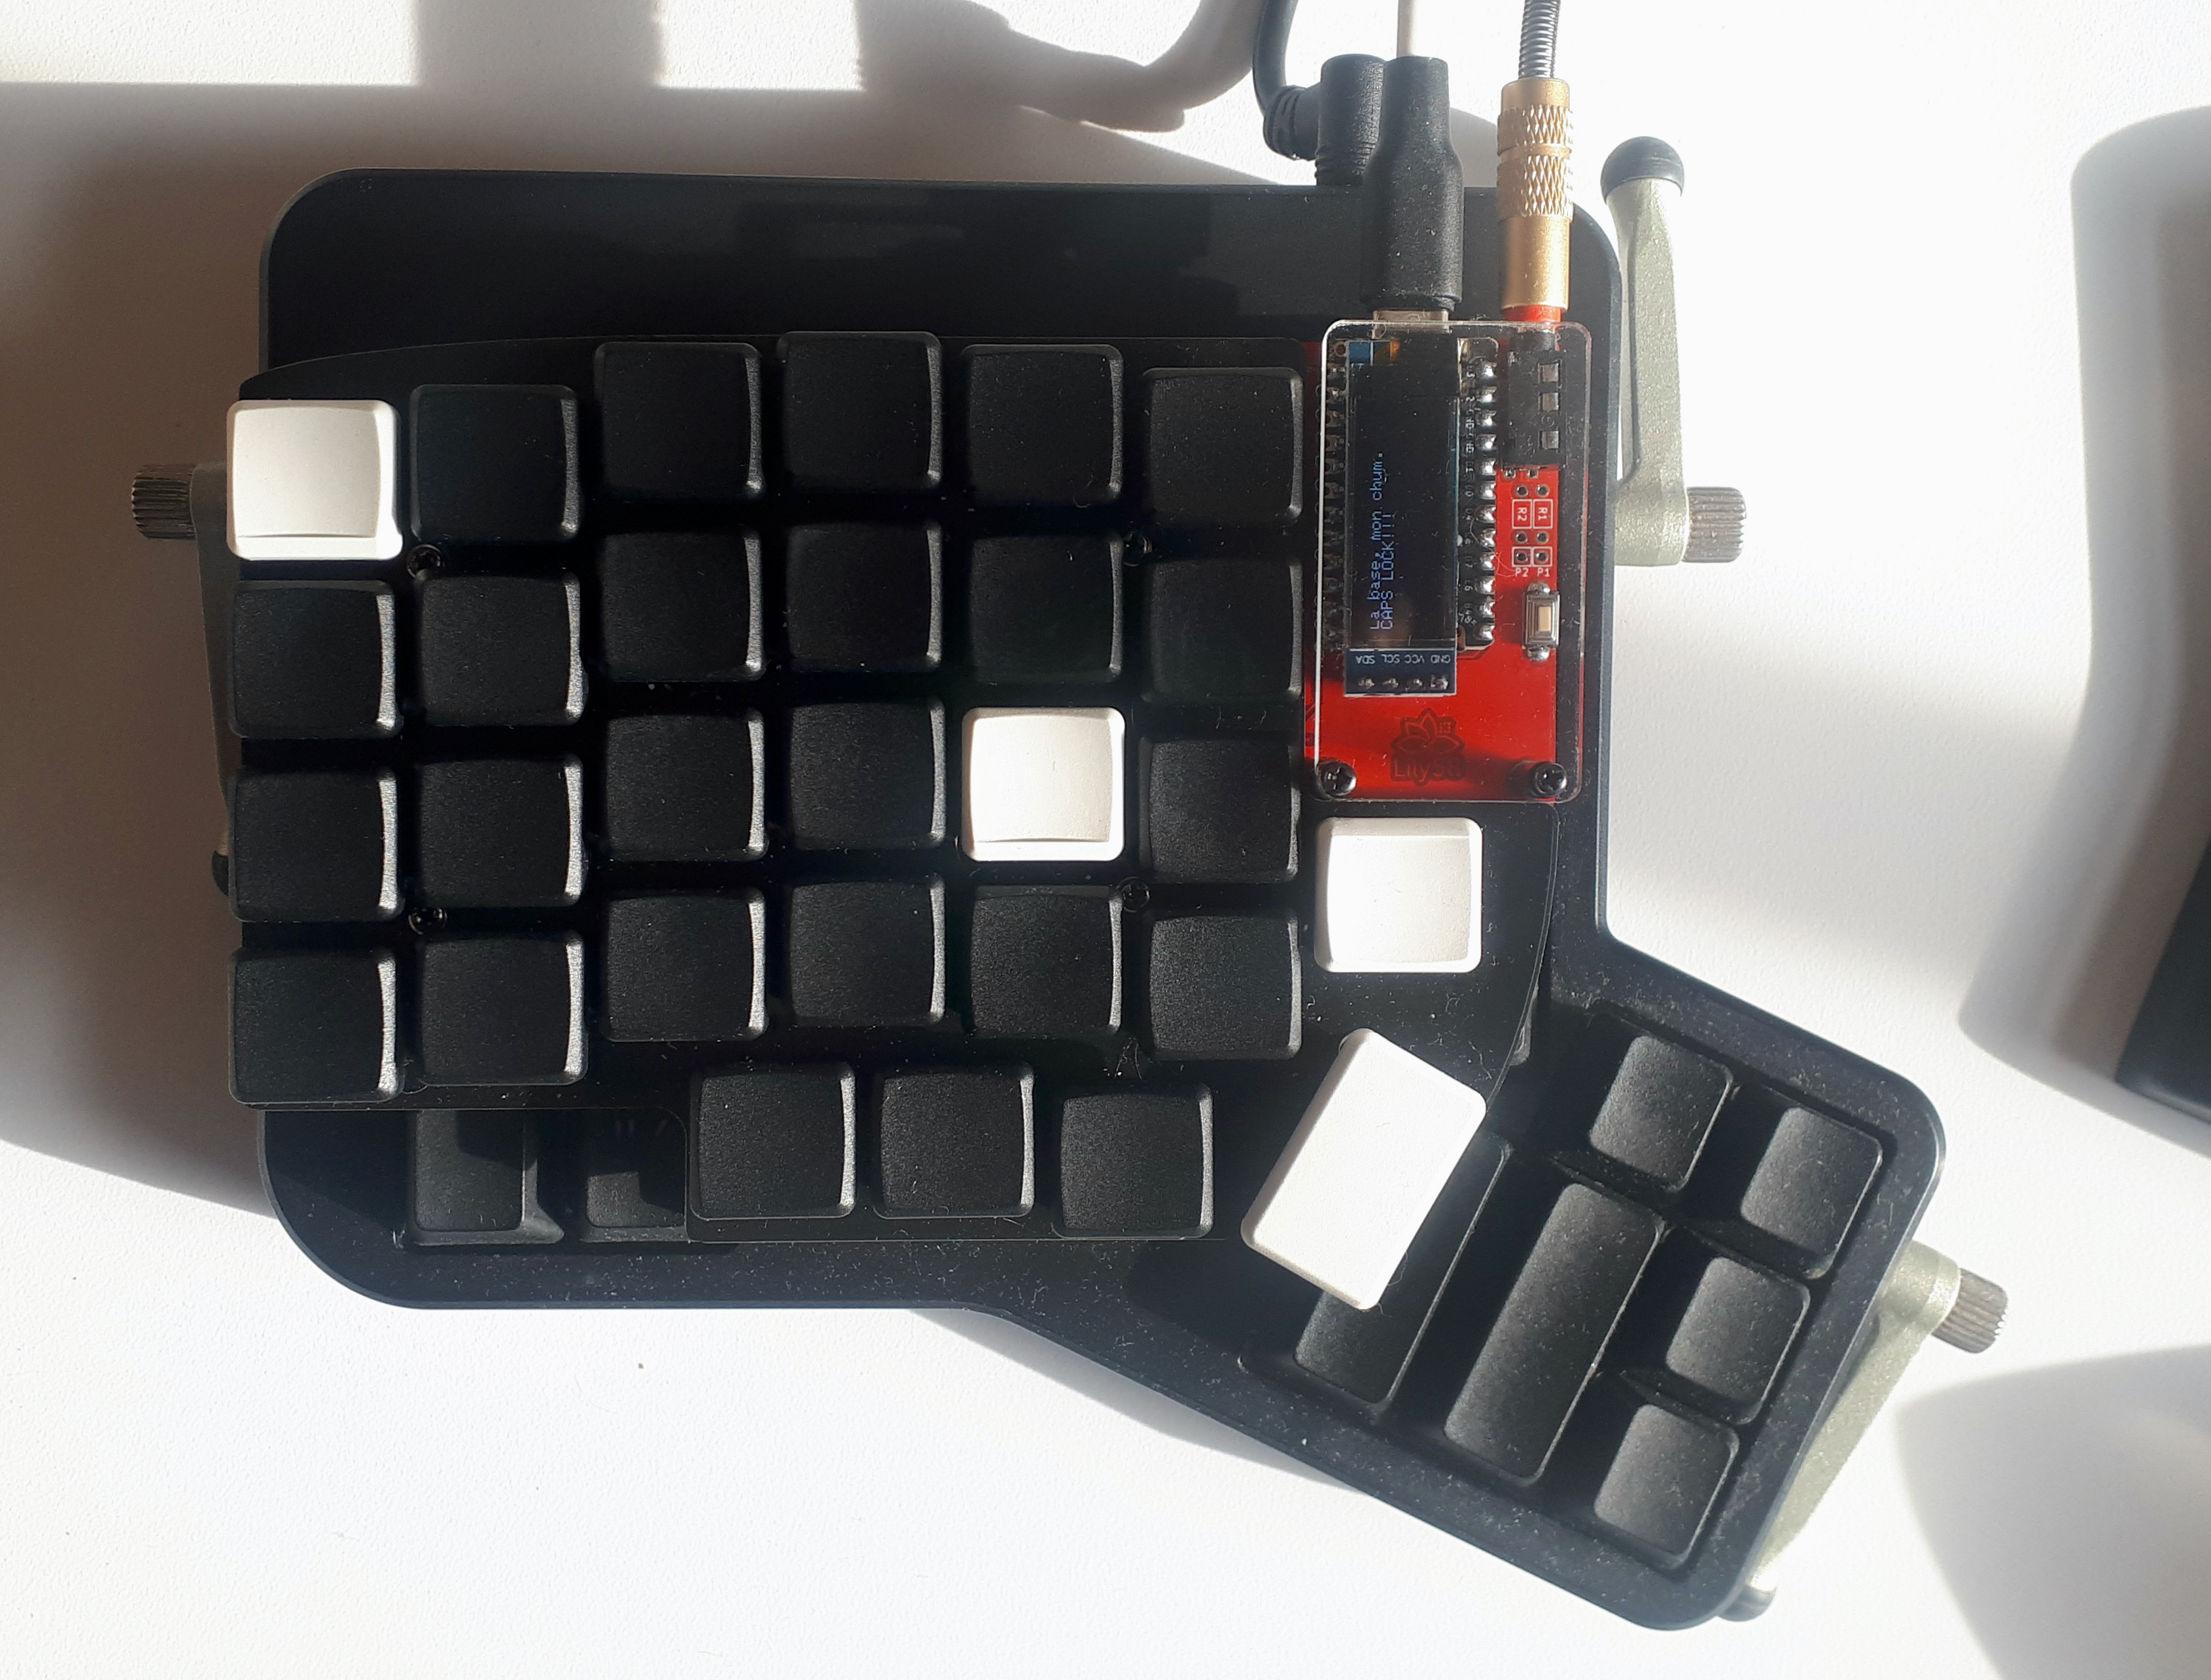 Lily58 on top of an Ergodox. Lily58 is smaller.